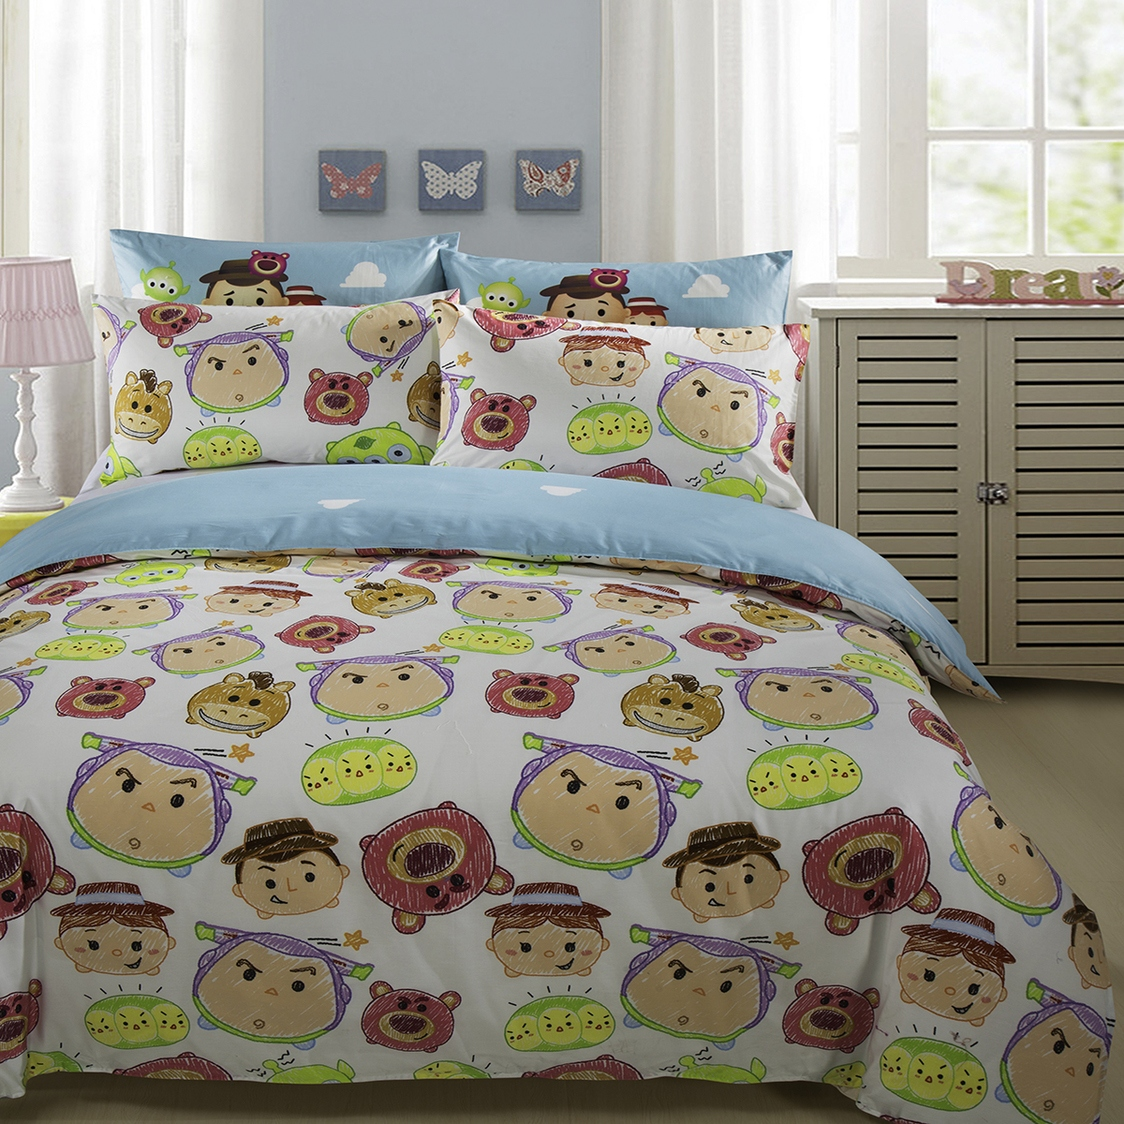 Up We Go B Fitted Sheet Set